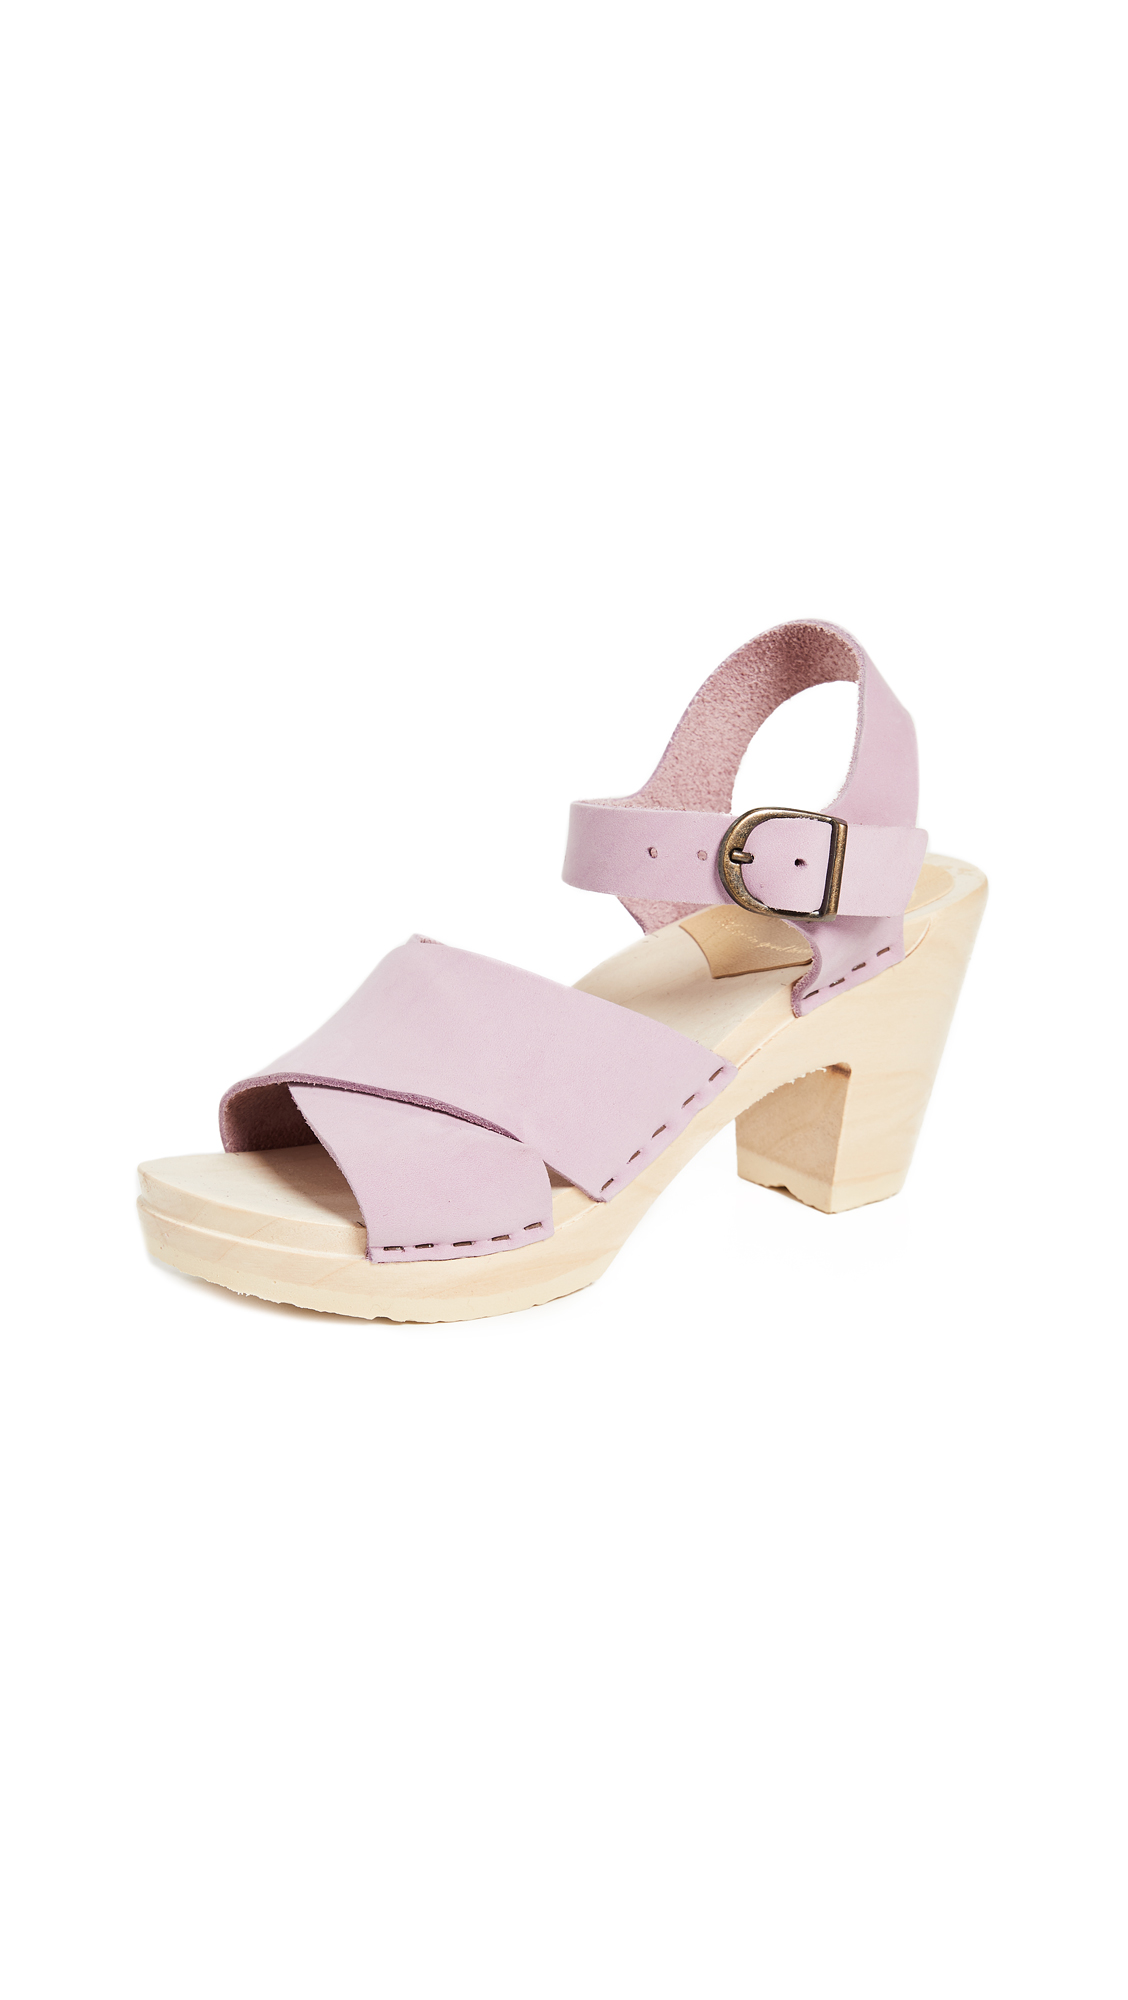 No.6 Coco Sandals with Crisscross Straps - Violet